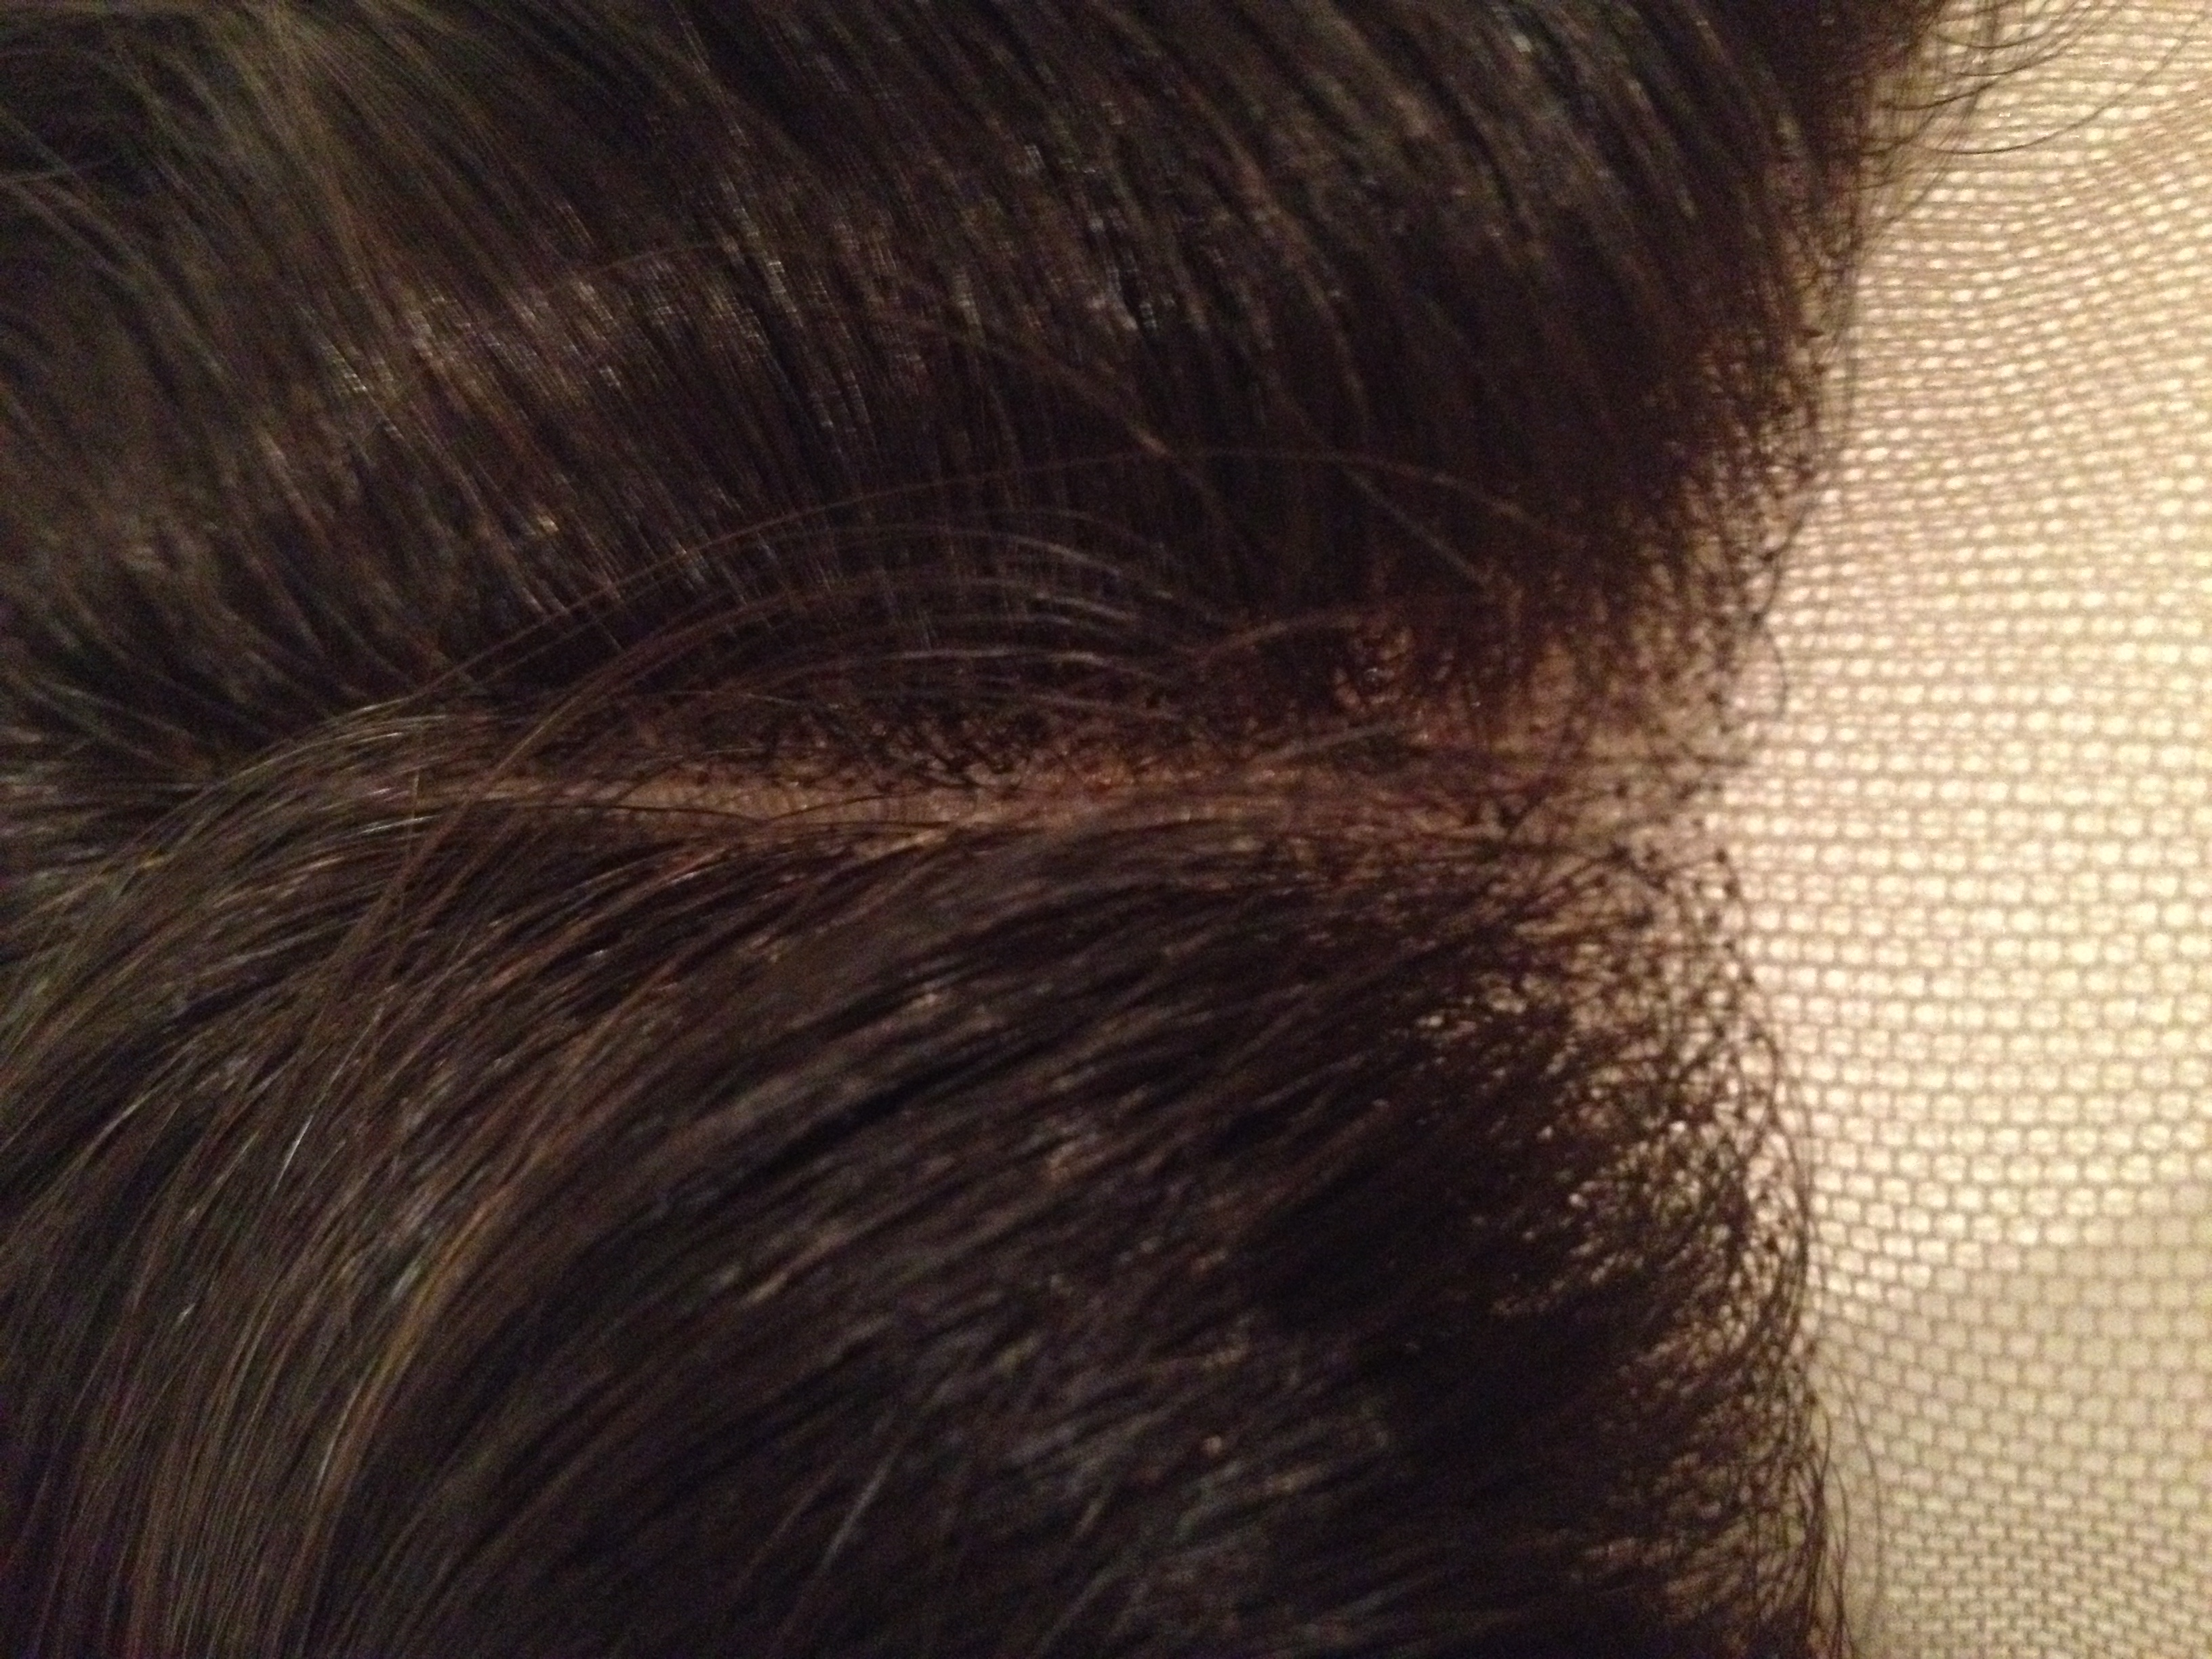 3 Way Part Lace Closure Close Up from Kybele Virgin Hair